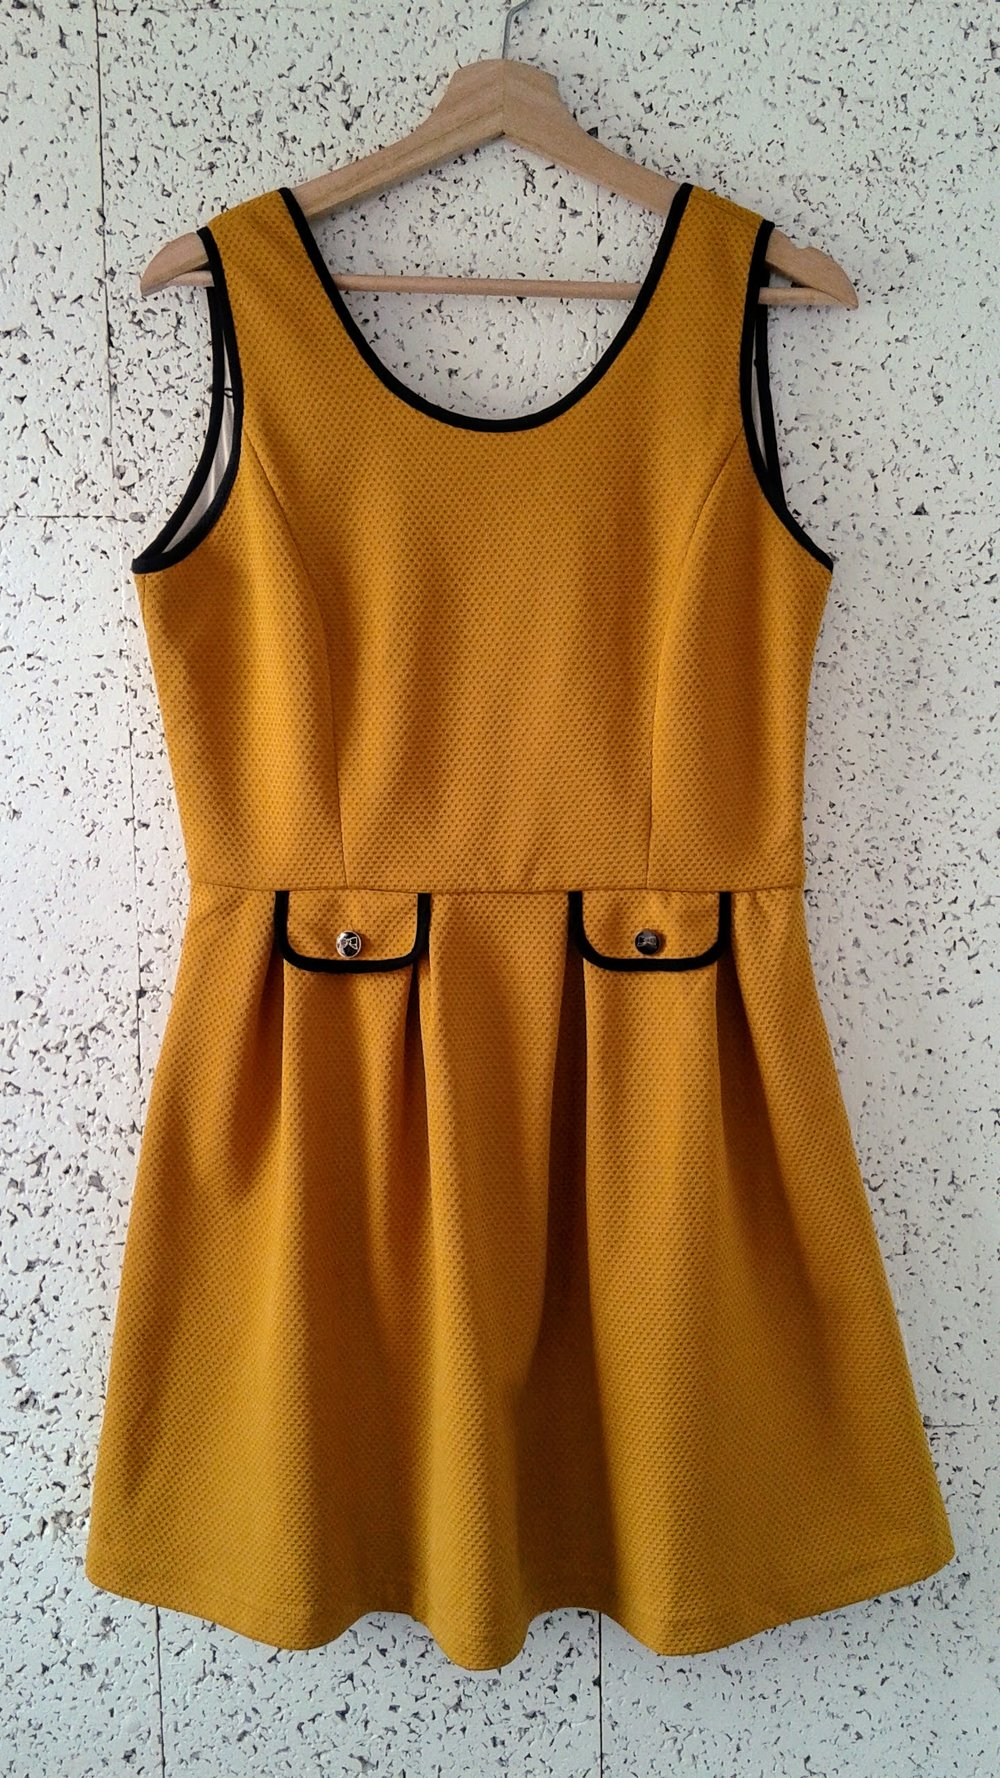 Yumi dress; Size 8, $42